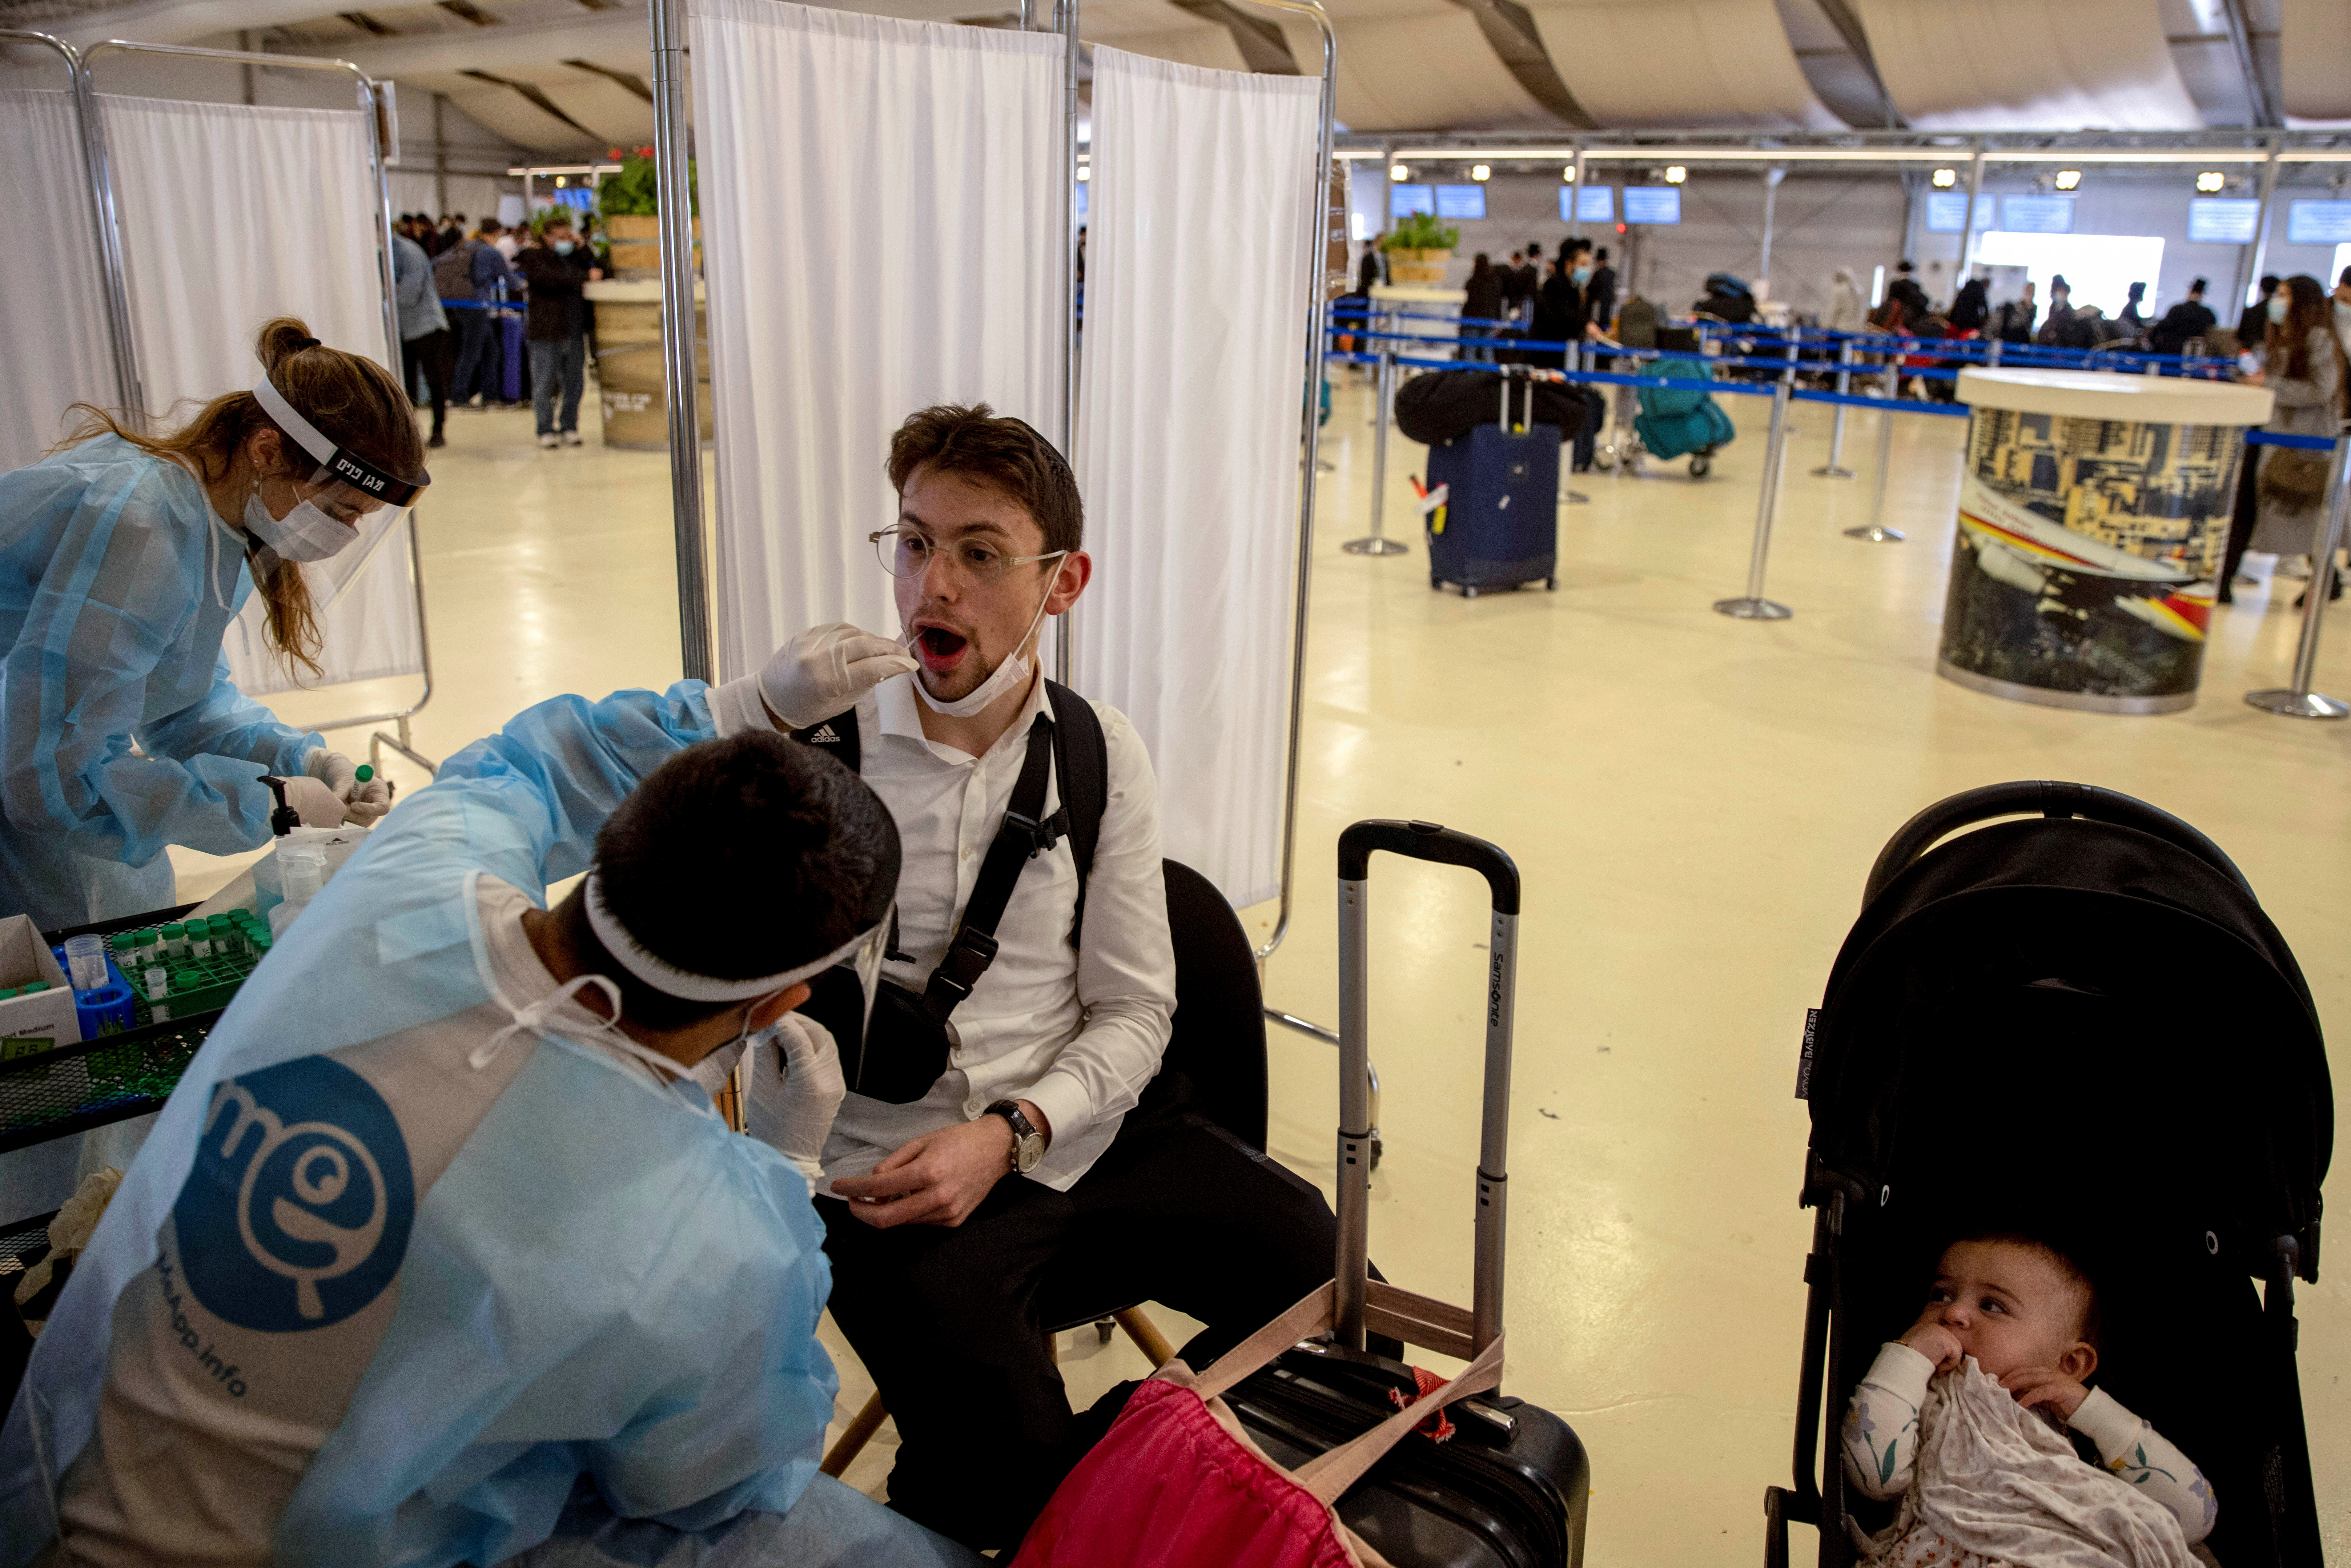 A healthcare worker takes a swab sample from a man for the coronavirus disease (COVID-19) test, after returning from overseas, at Ben Gurion International Airport in Lod, near Tel Aviv, Israel April 13, 2021. REUTERS/Ronen Zvulun.